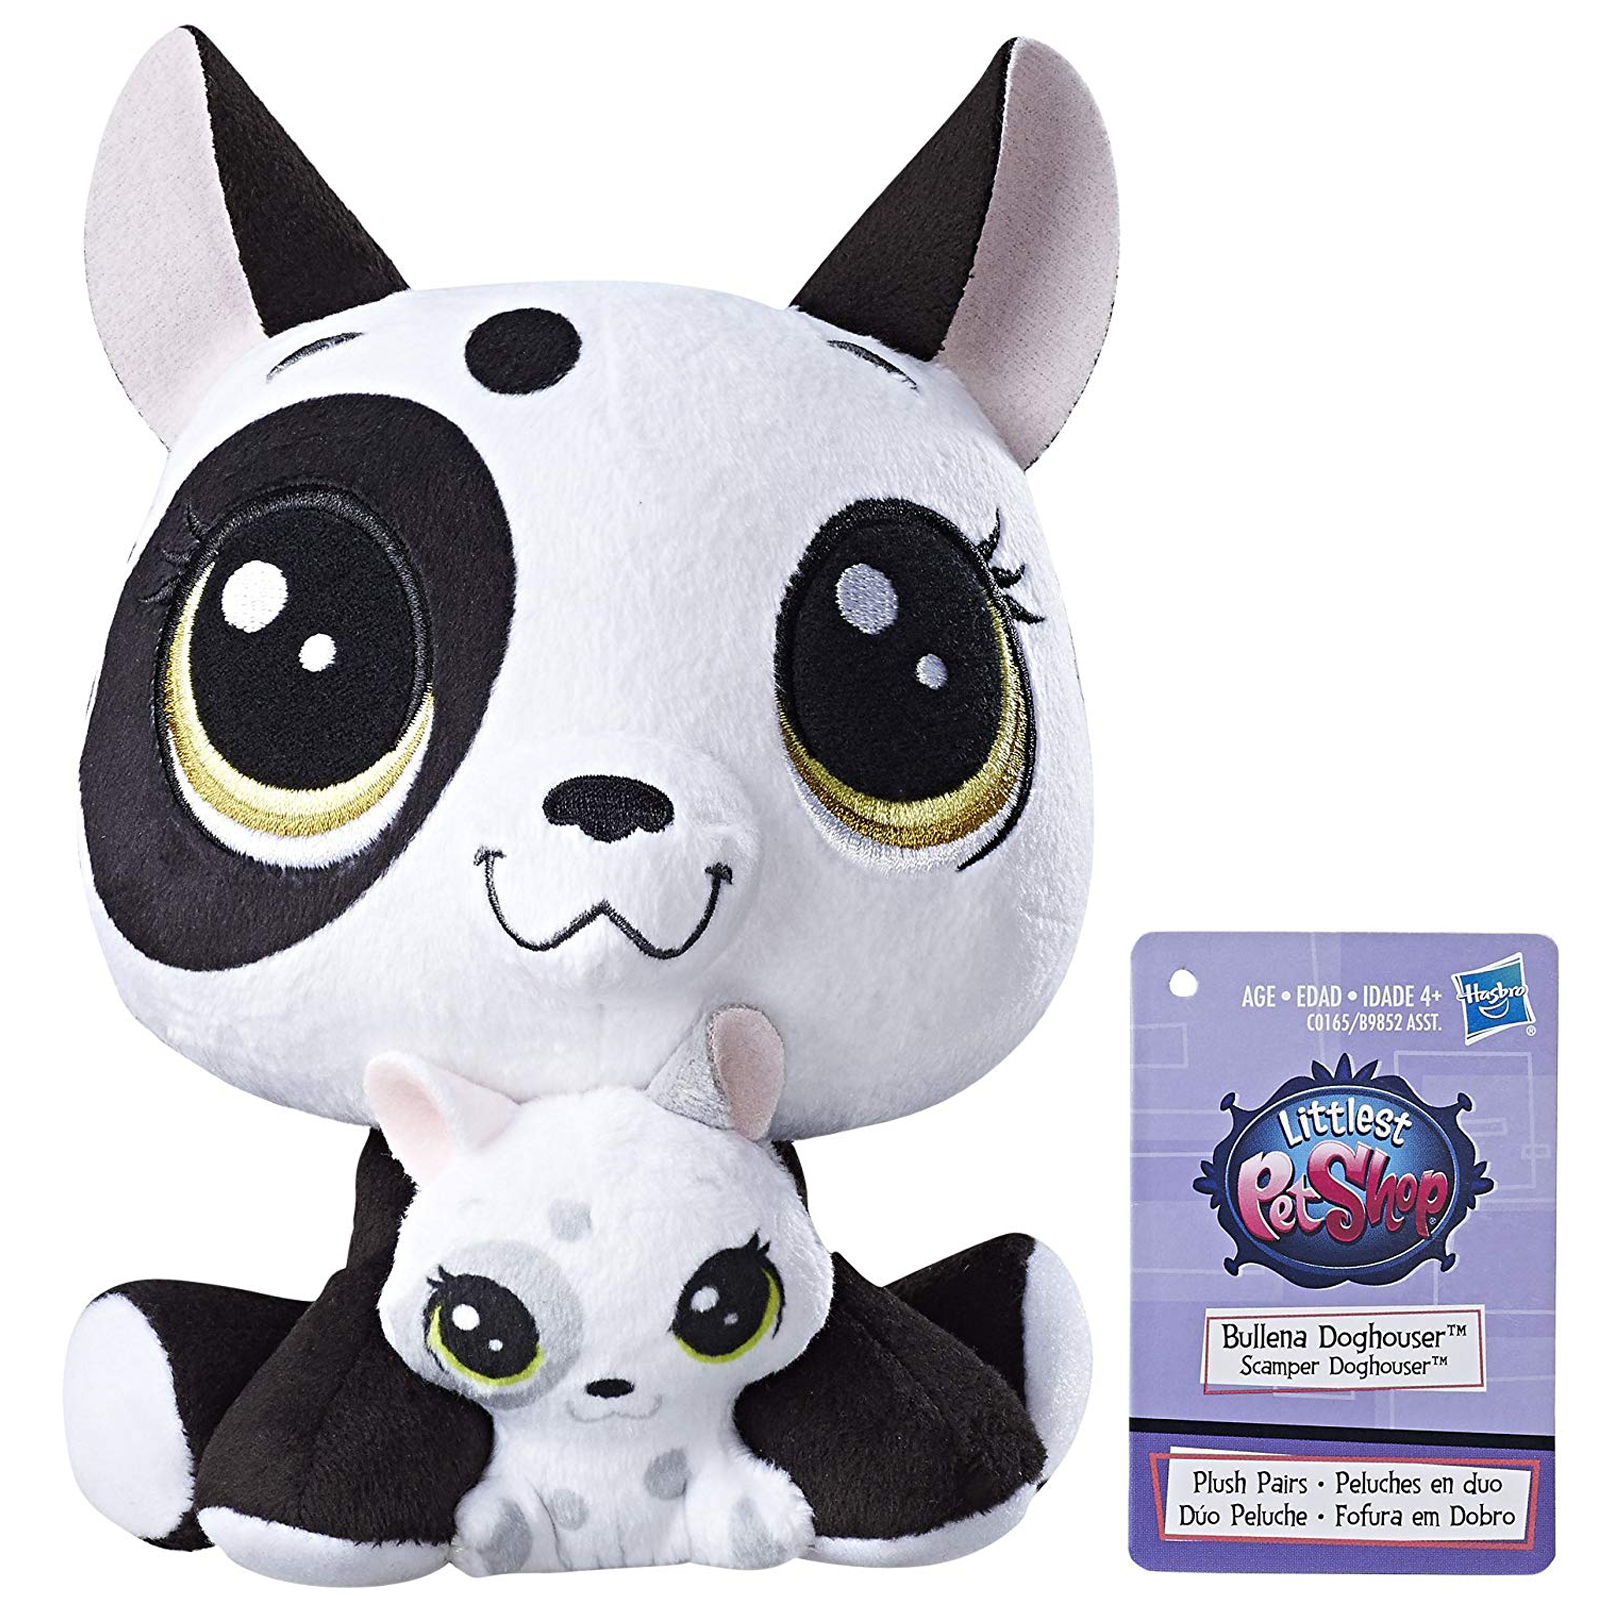 Littlest Pet Shop Bullena Doghouser and Scamper Doghouser Soft Plush Pairs